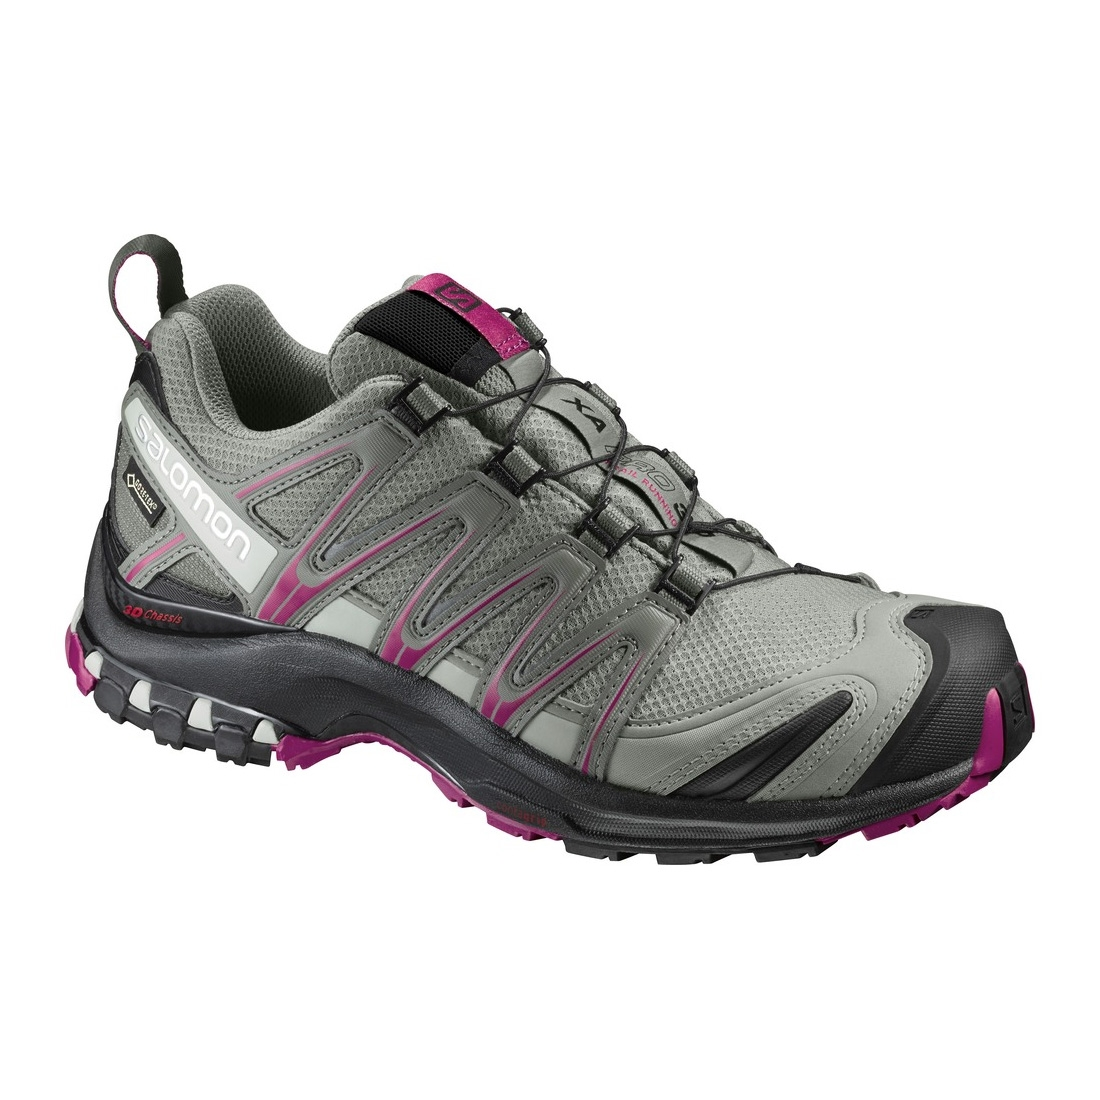 salomon xa pro 3d gtx walking shoes women 39 s shadow black sangria. Black Bedroom Furniture Sets. Home Design Ideas